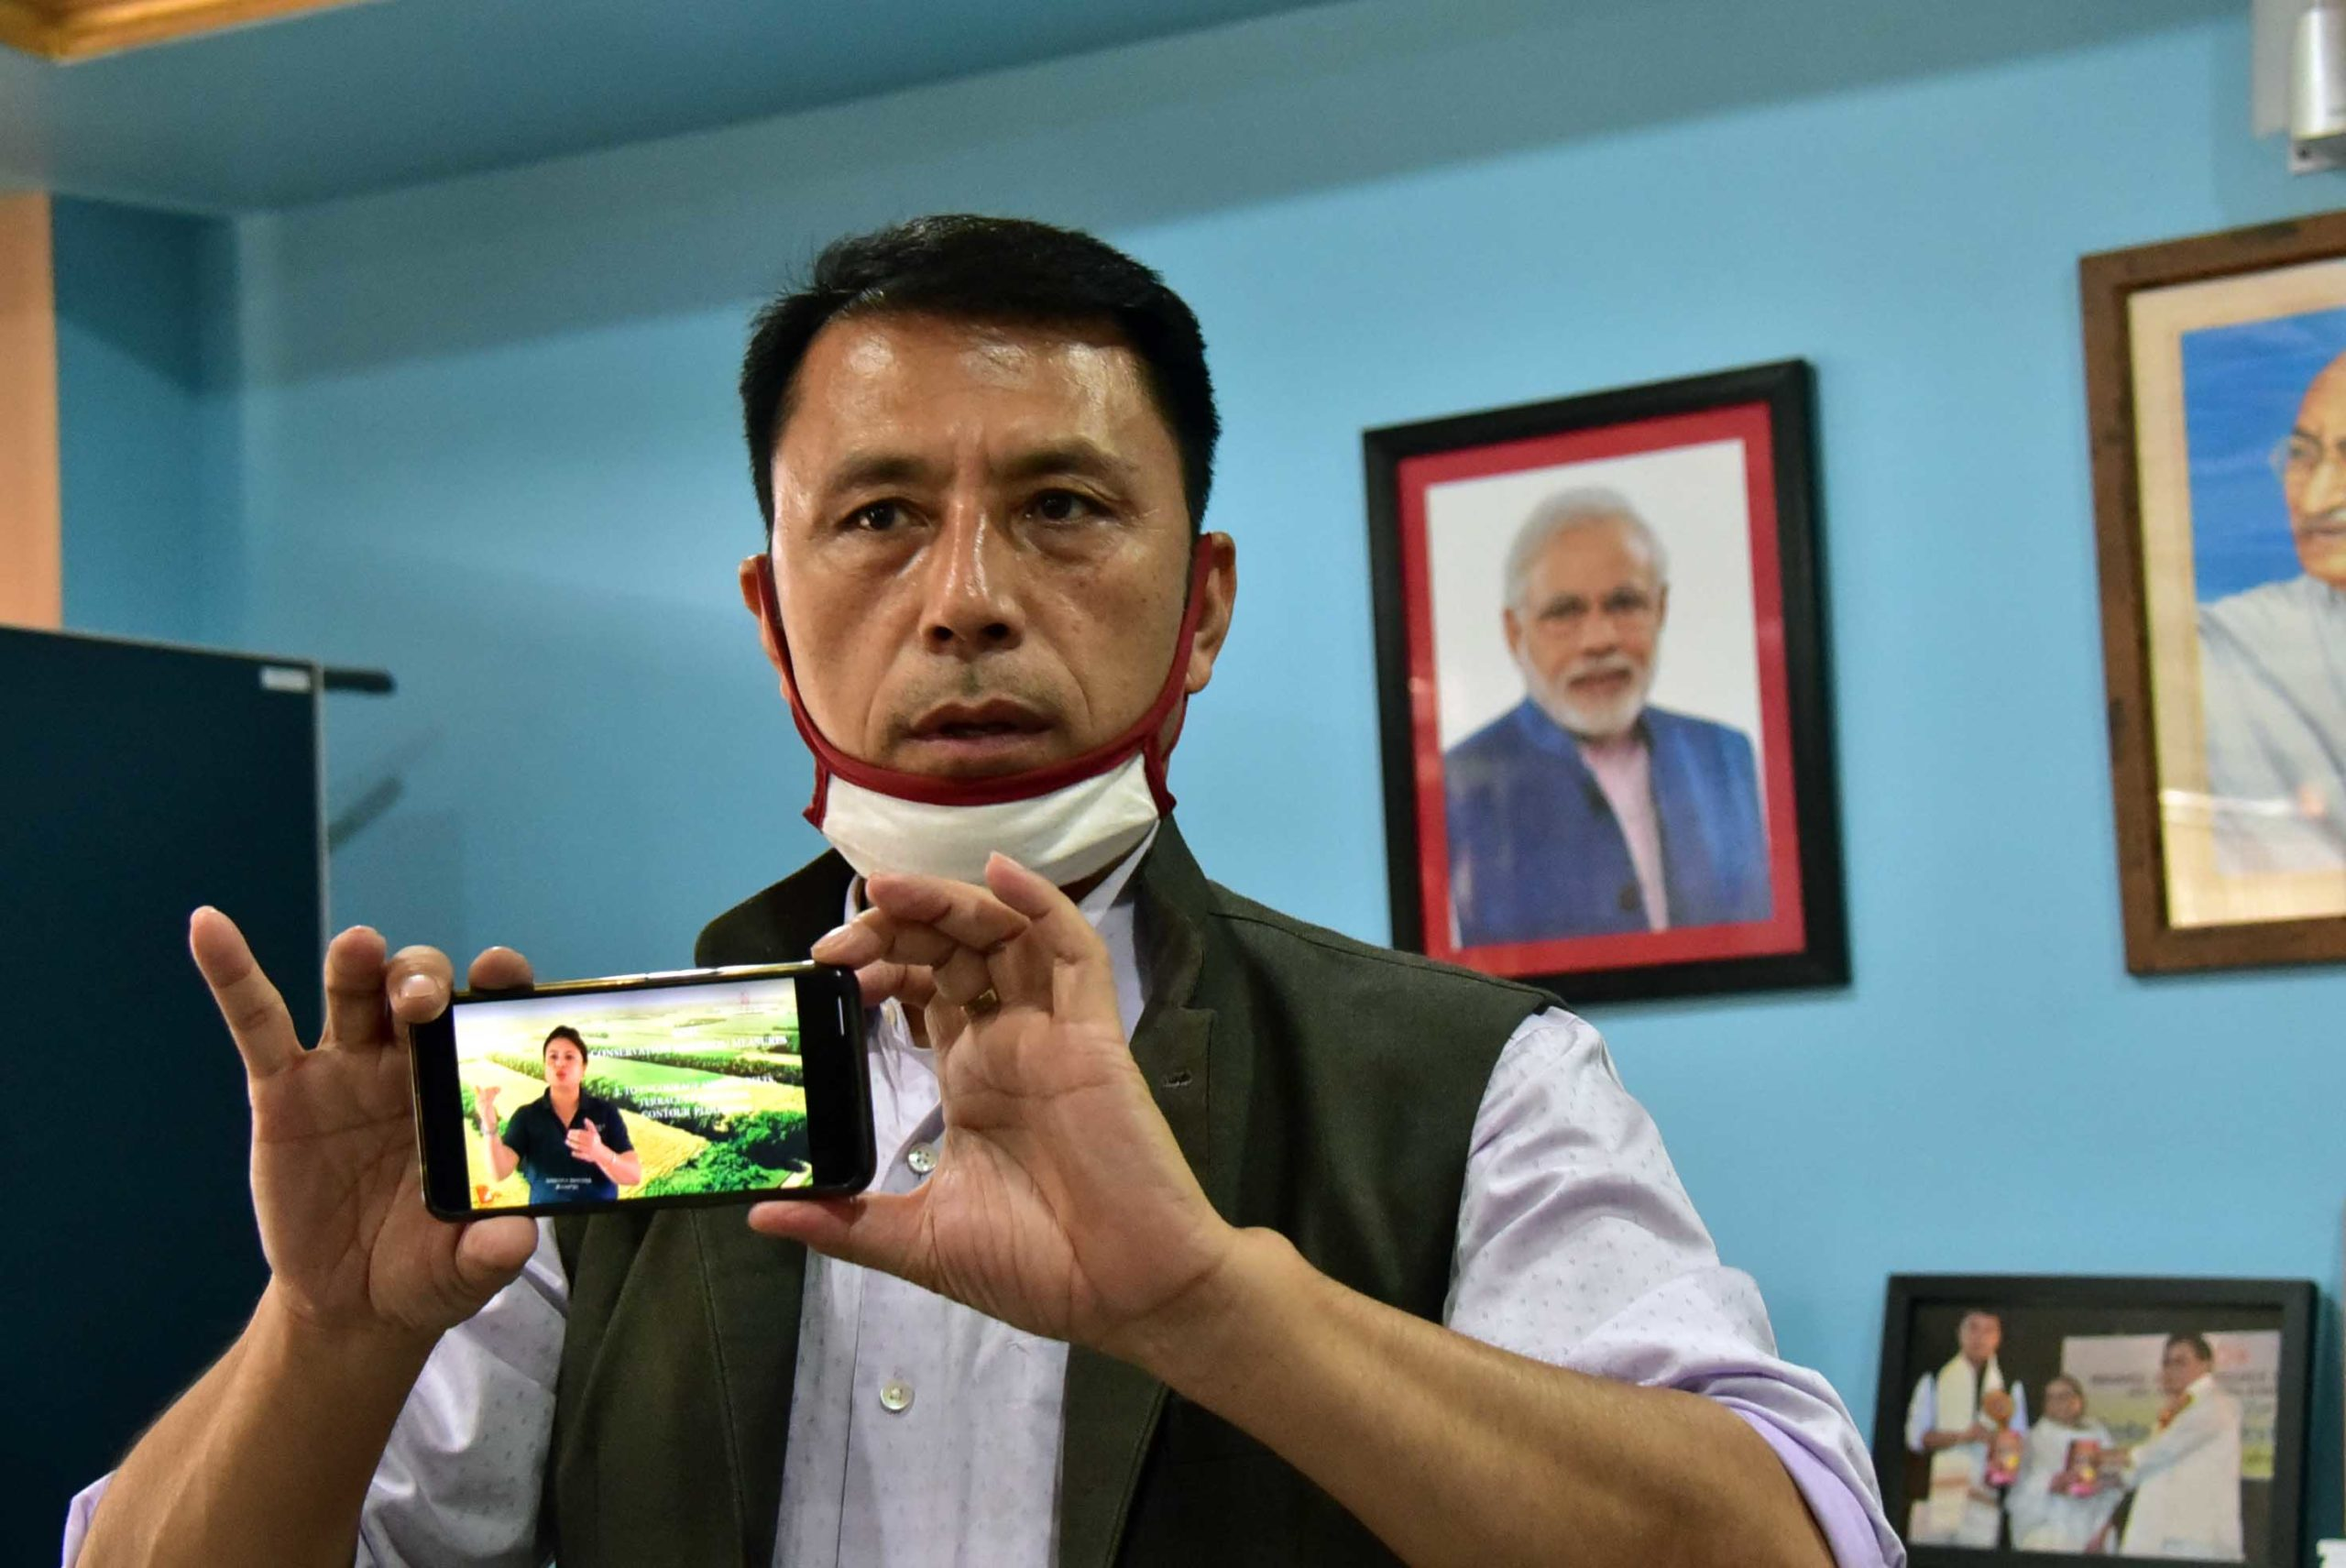 Education Minister launches Manipur's first educational channel 'LAIRIK' on JioTV